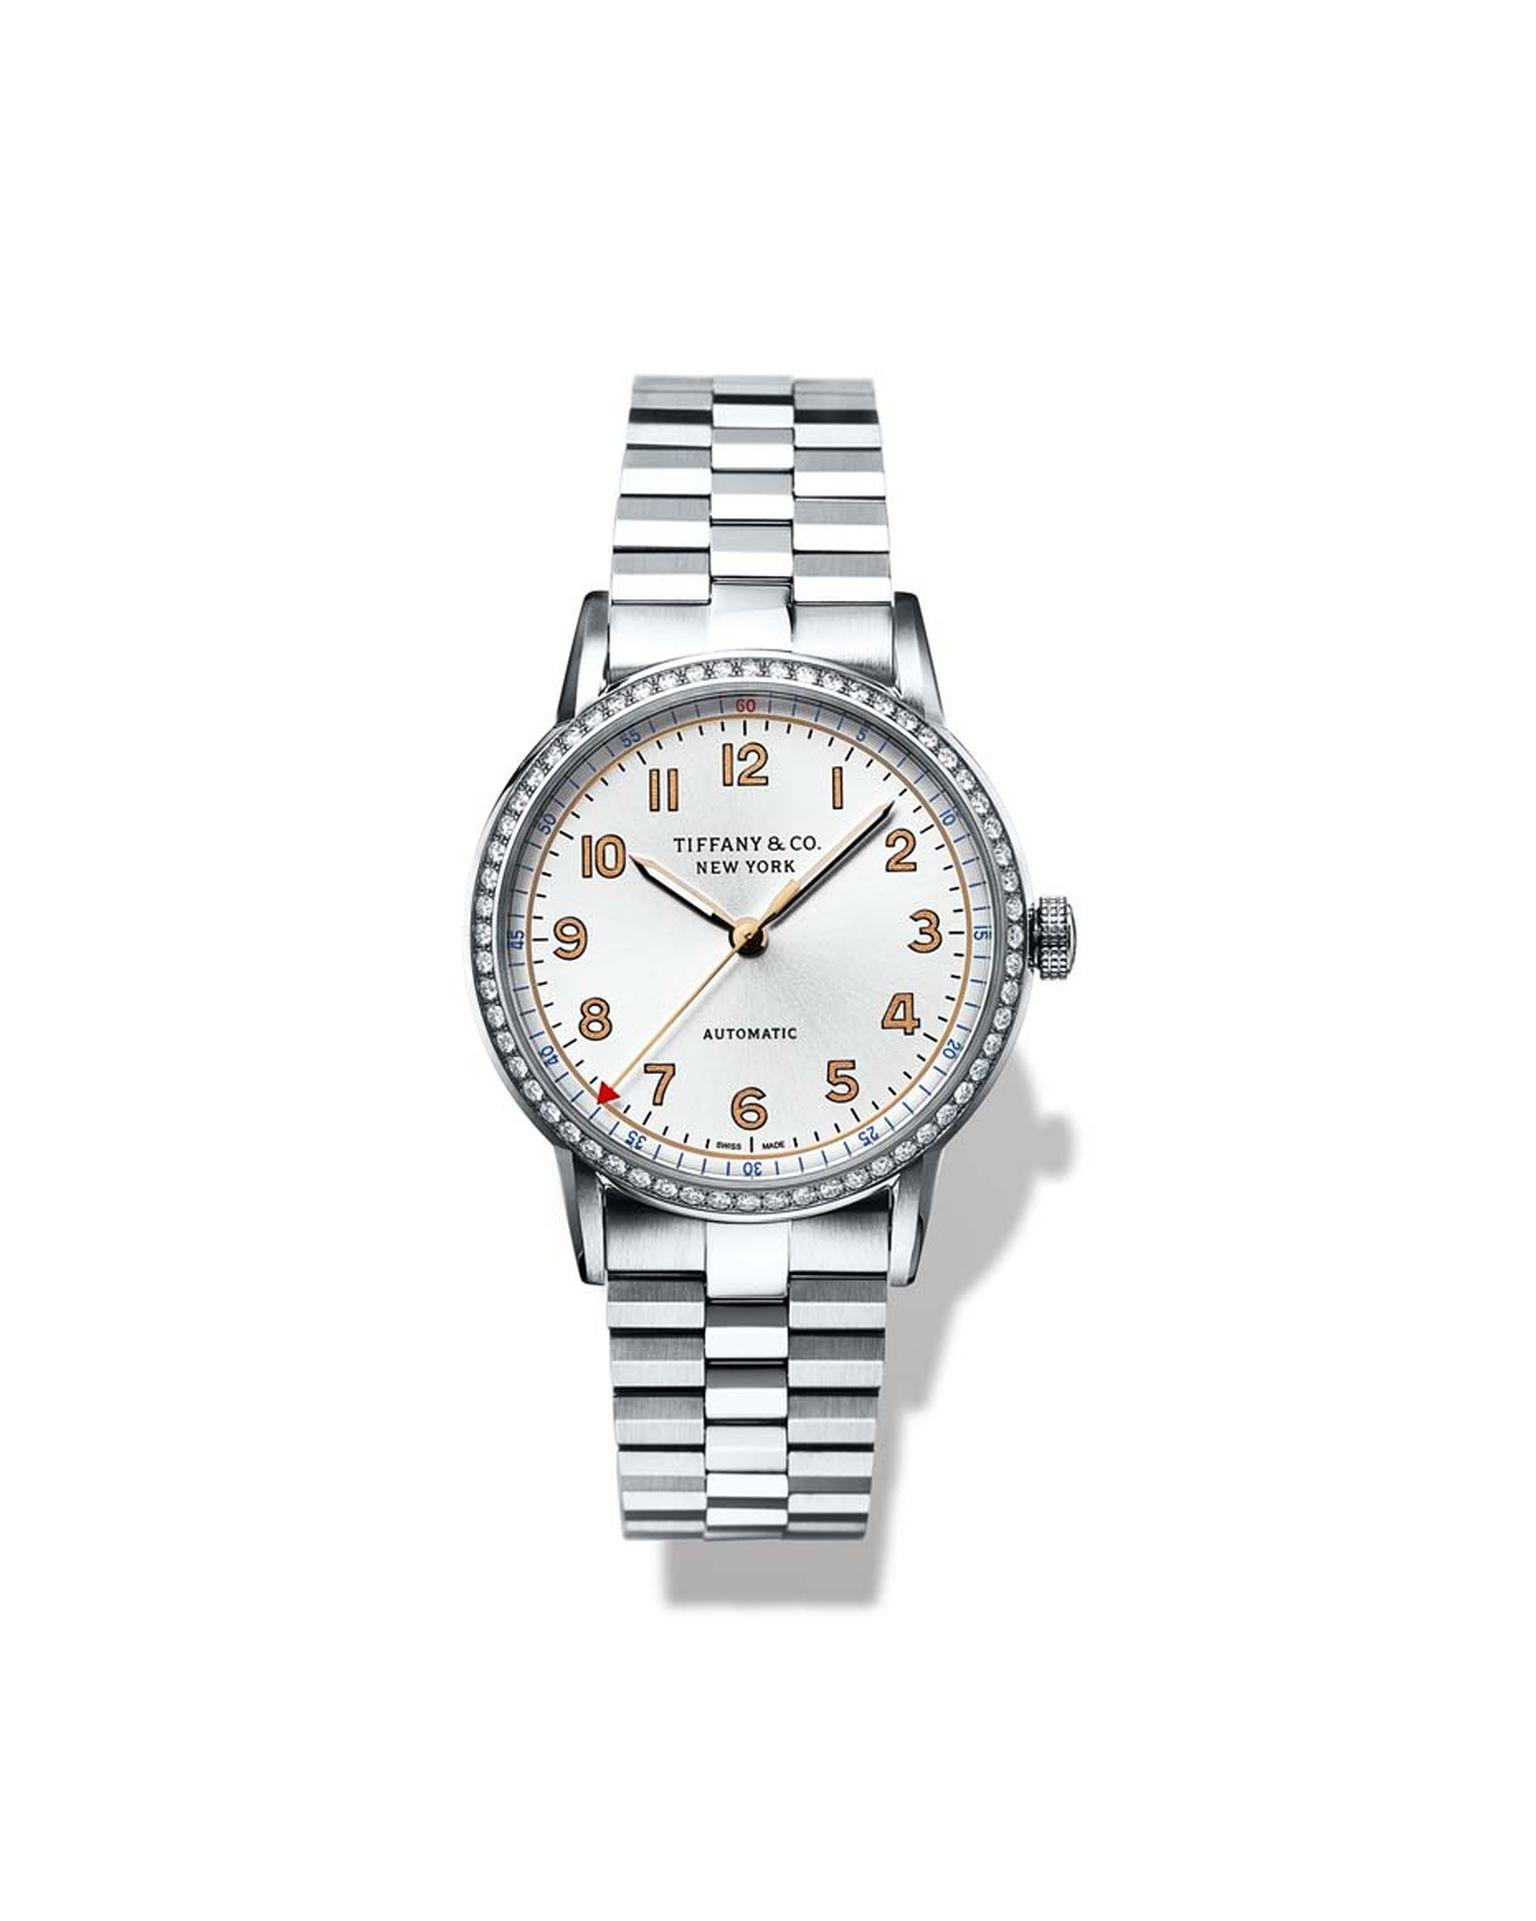 Tiffany & Co. CT60 3-Hand 34mm ladies' watch in stainless steel with a diamond-set bezel and white sunray dial.